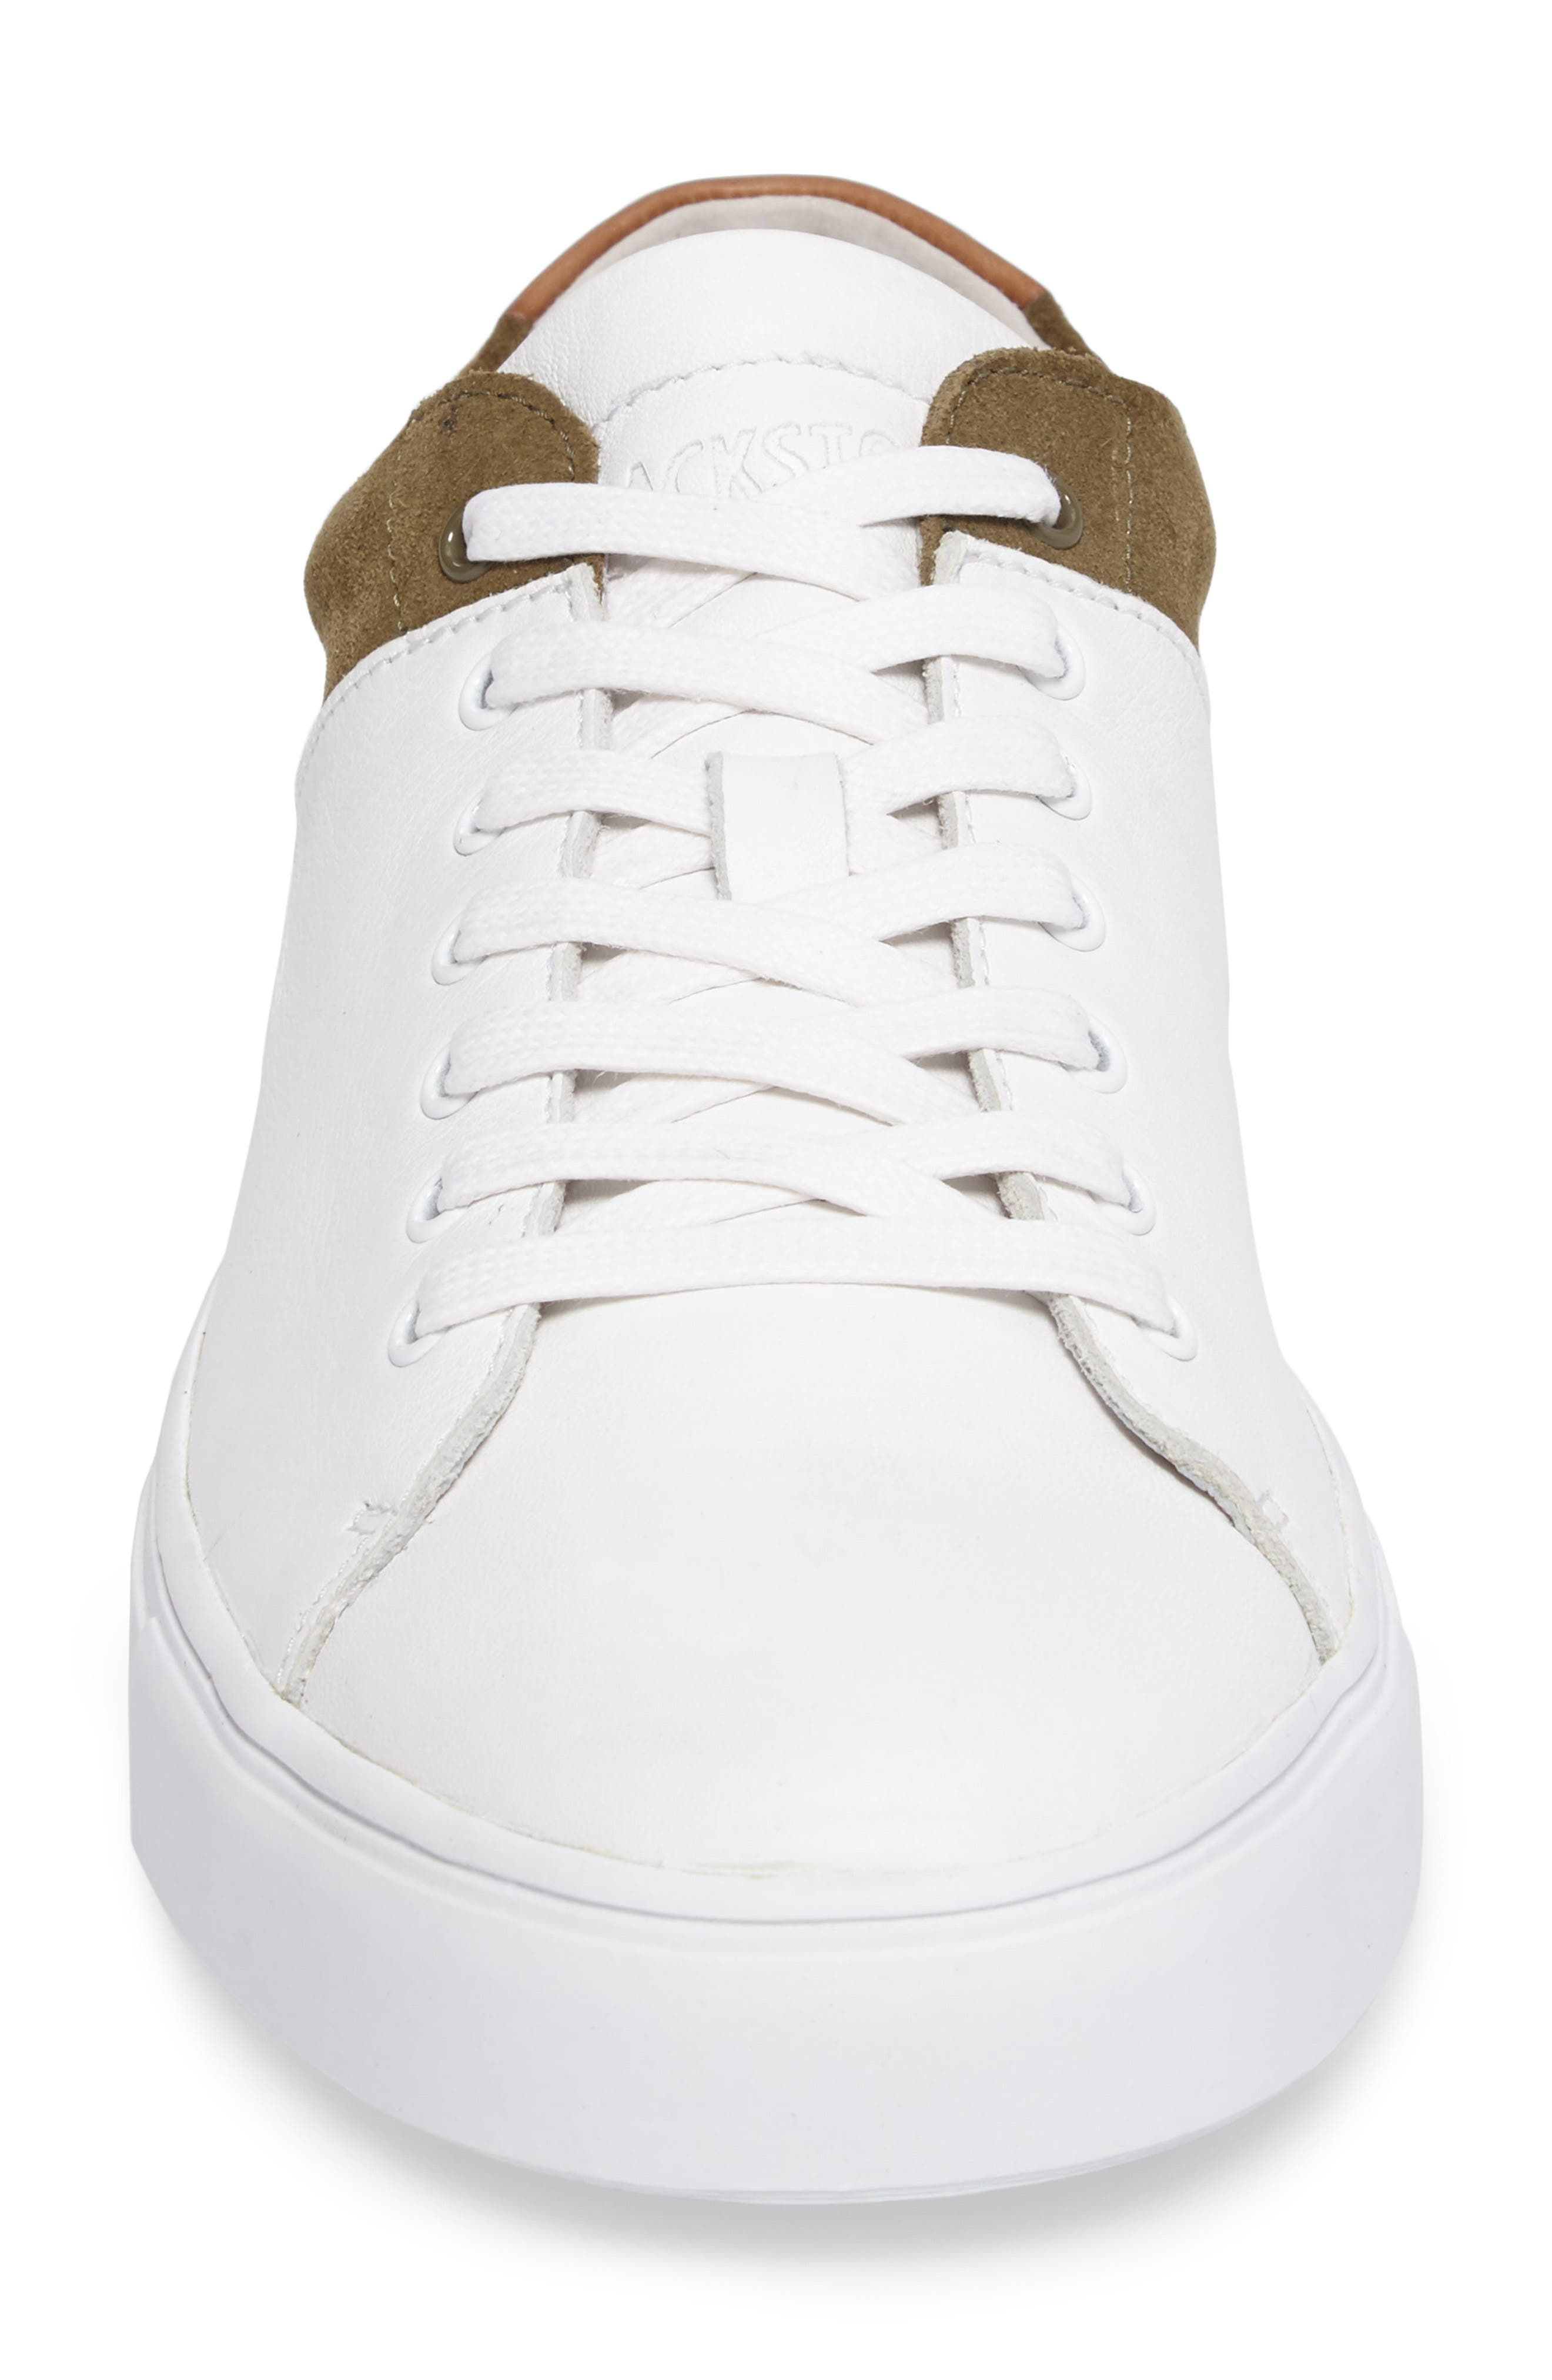 NM03 Two-Tone Sneaker,                             Alternate thumbnail 4, color,                             White/ Olive Leather